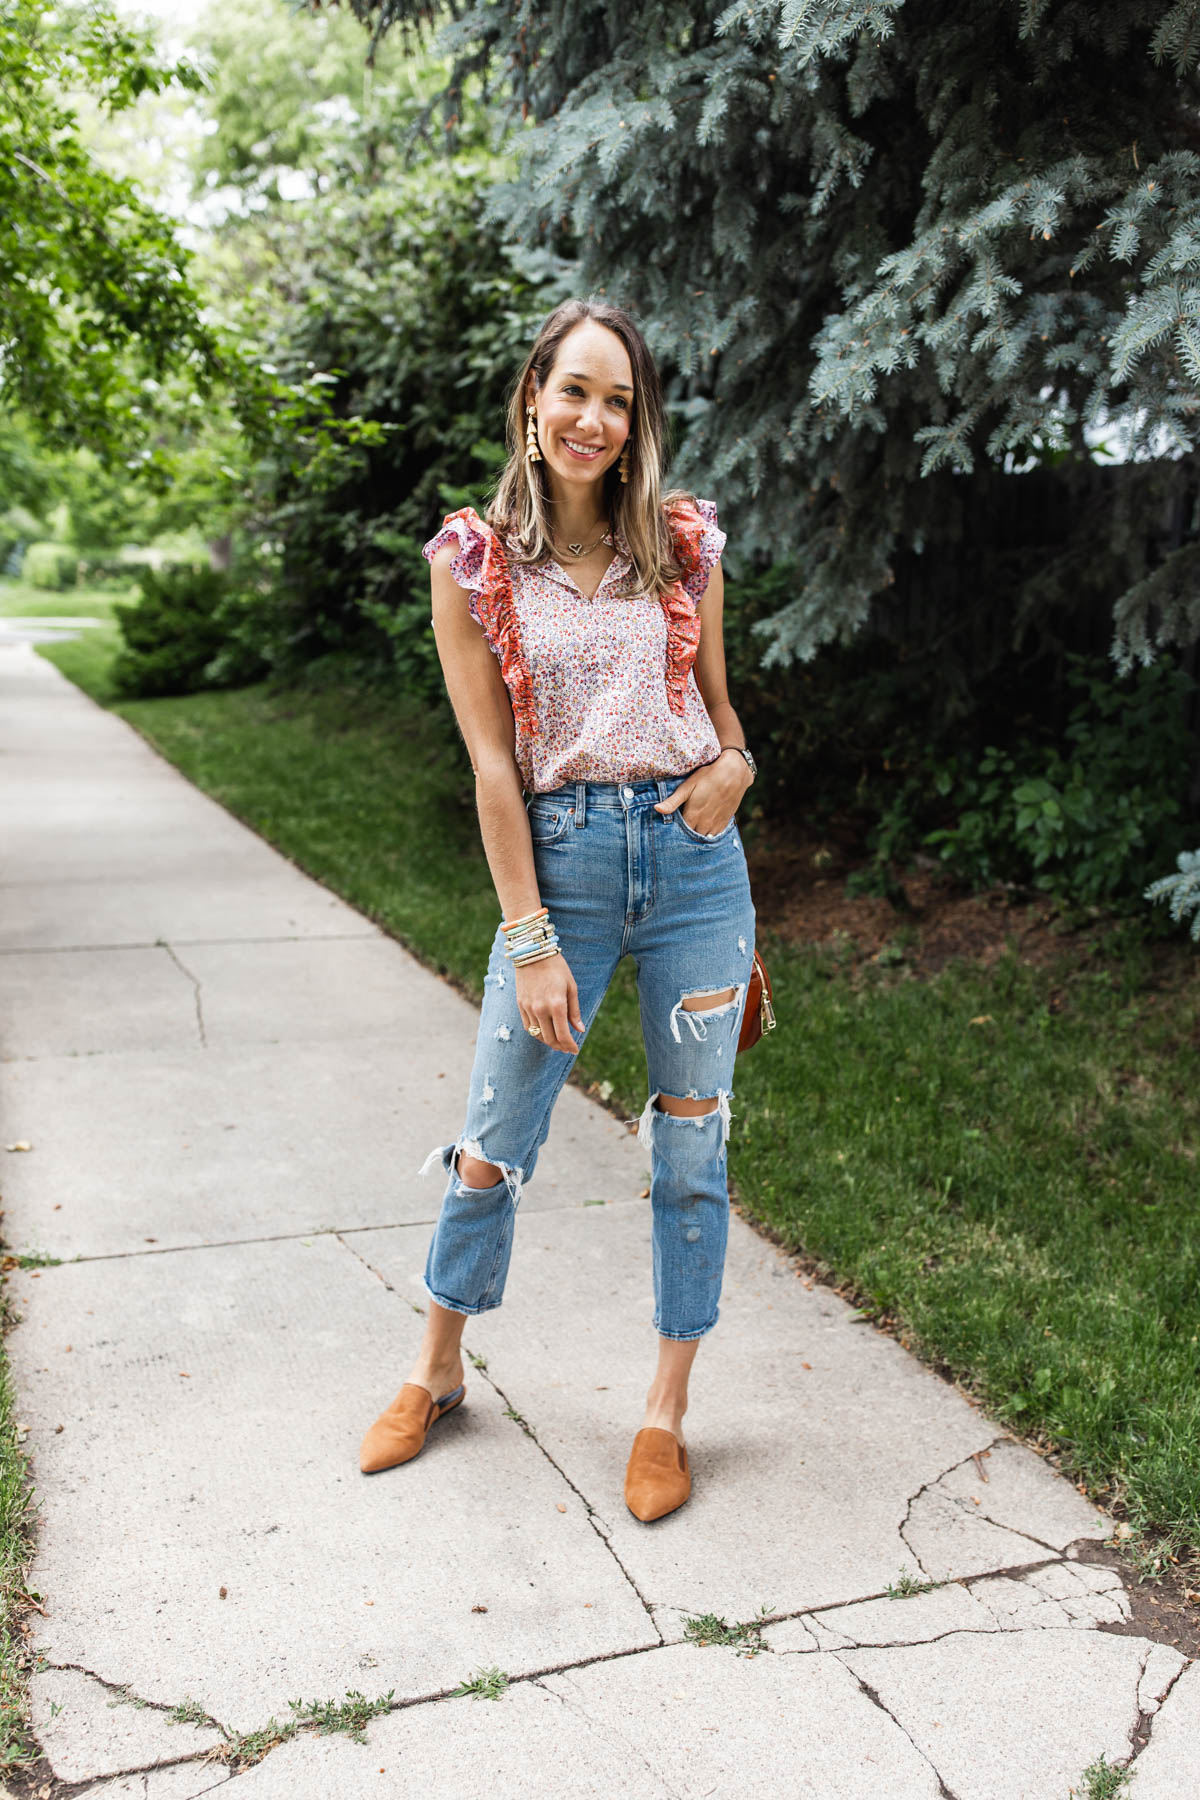 ruffled top and jeans outfit